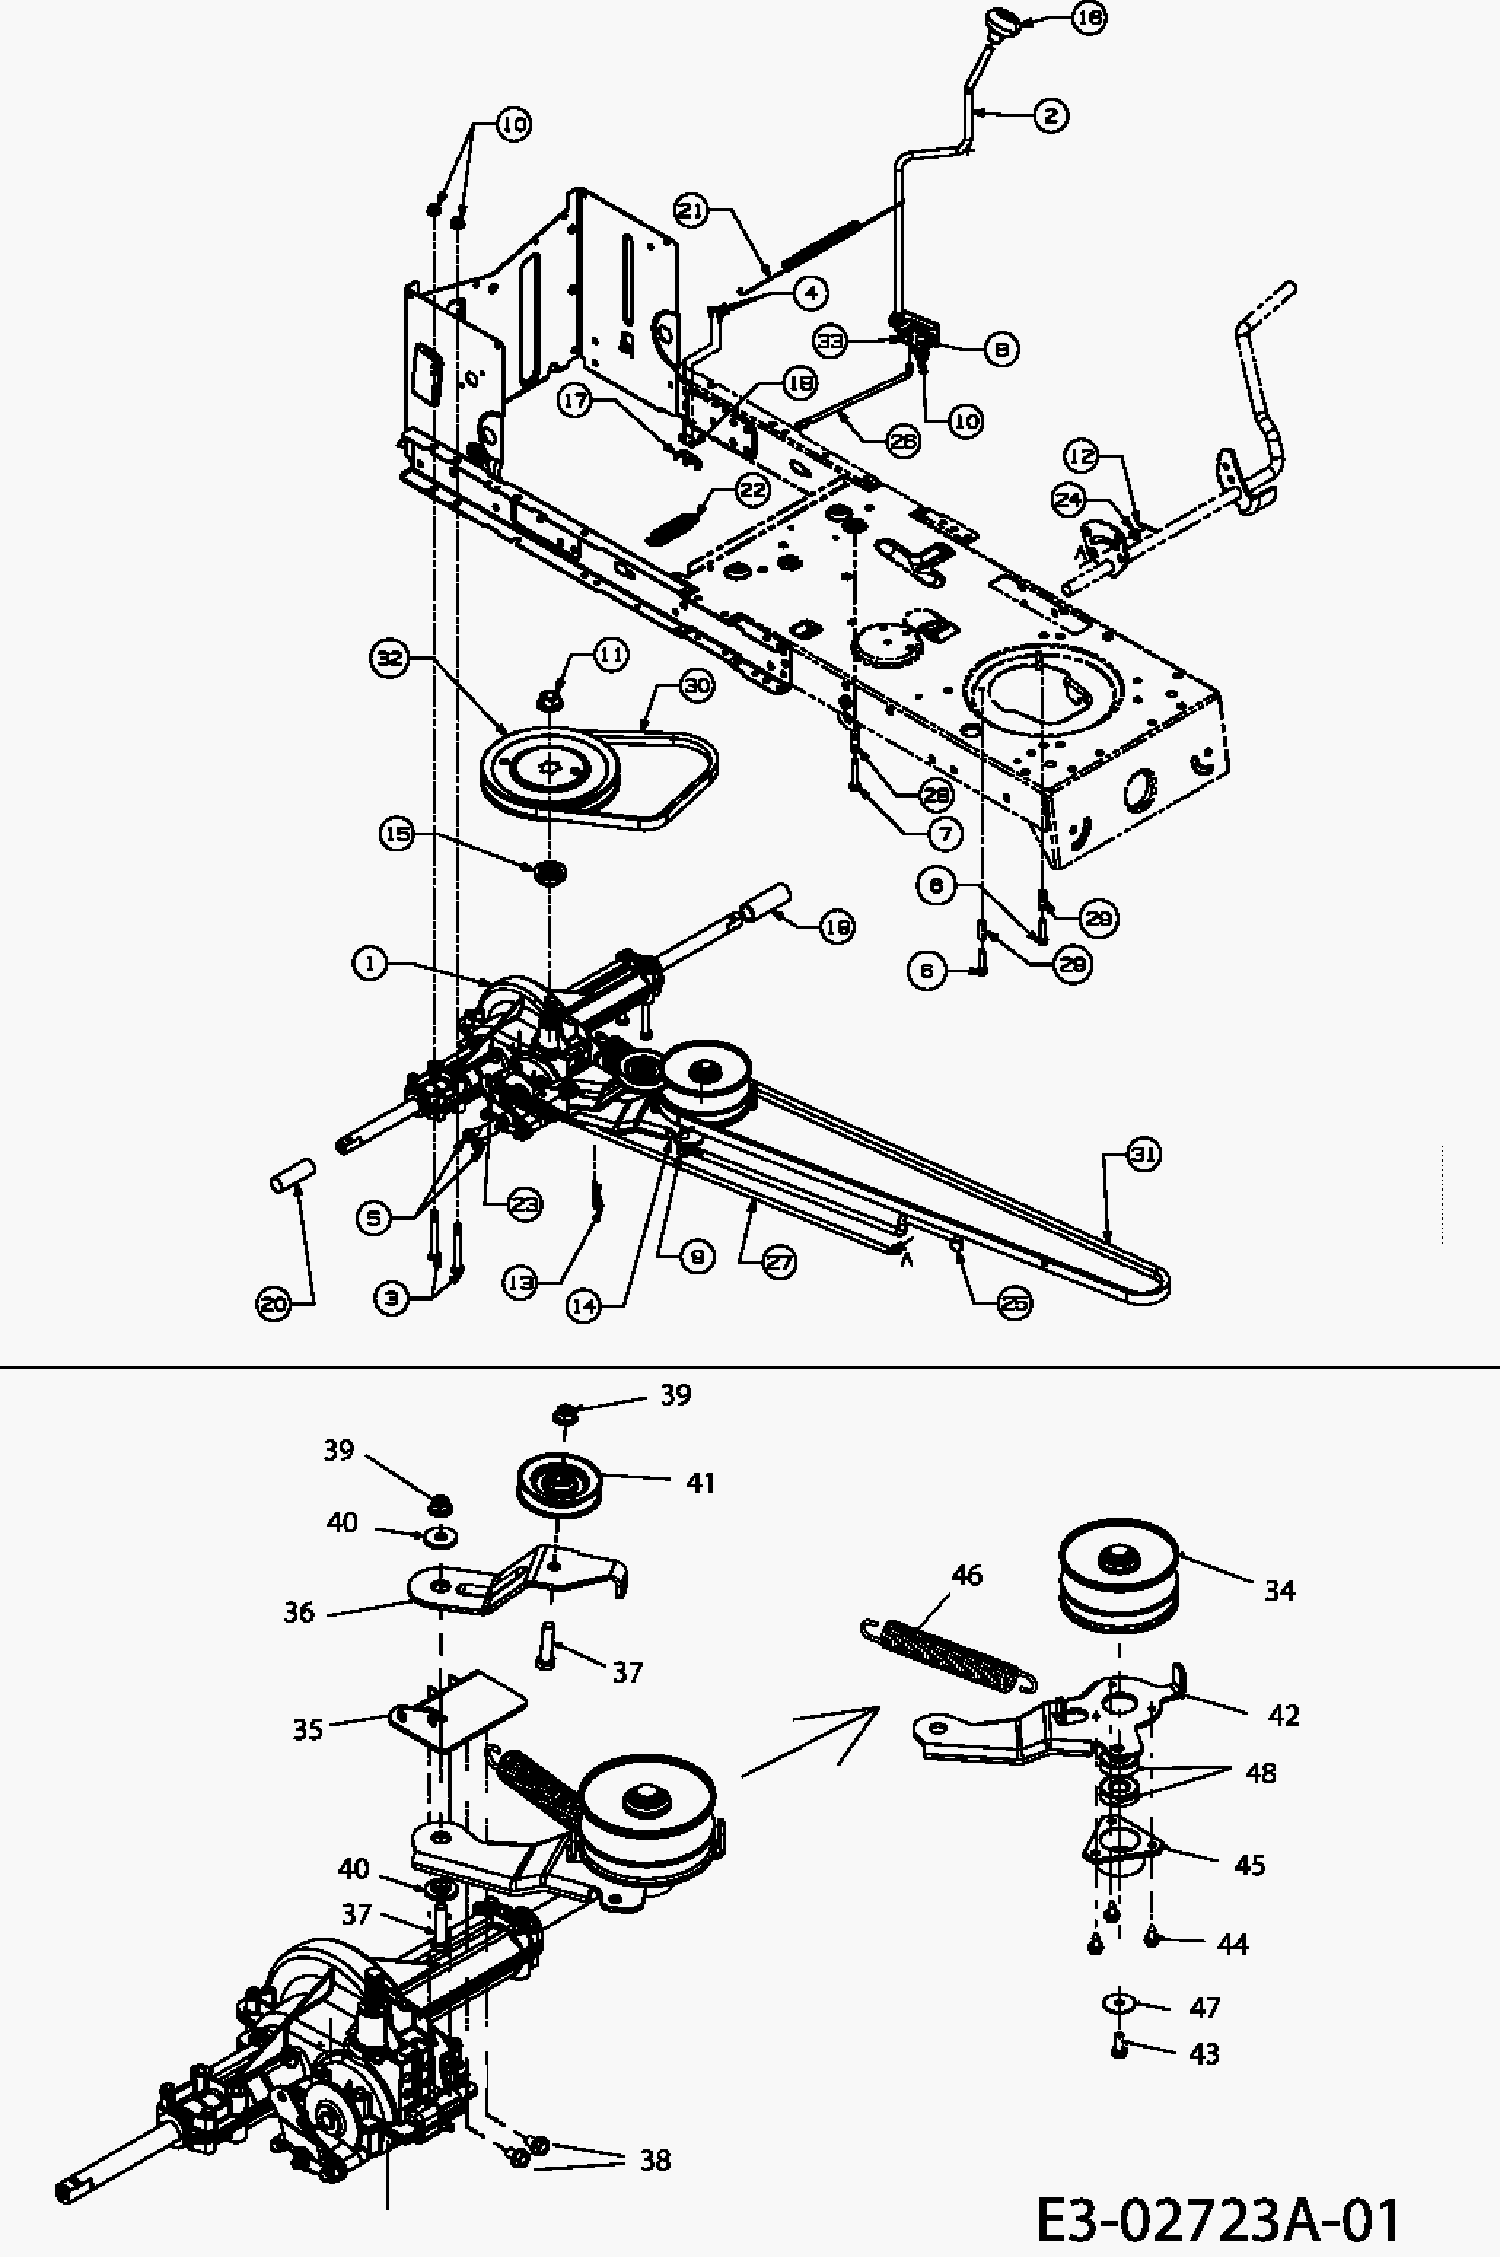 T4799659 Need diagram besides 00007 in addition Diagram Of Cub Cadet Rzt 17 Motor additionally Simplicity Tractor Wiring Diagram 1692593 together with 144602 Best Snowblower X300 2. on simplicity lawn mower belt diagram